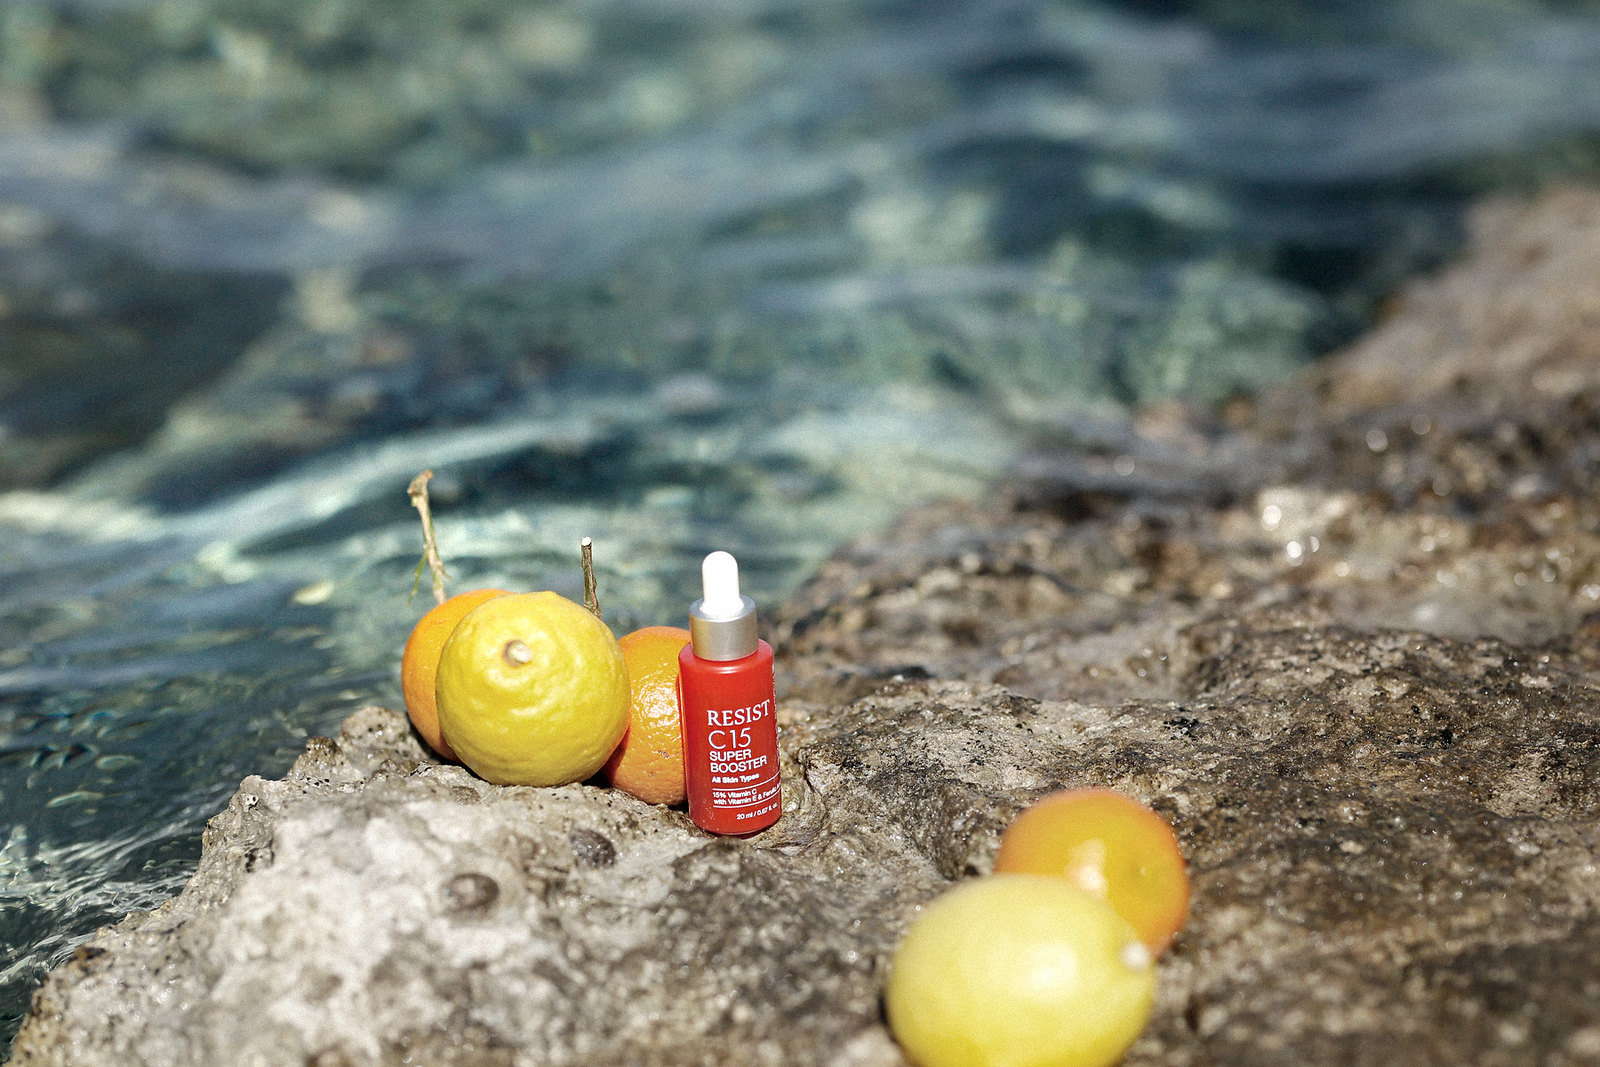 paula's choice c15 booster summer vitamins sea lemons bathing swimming skincare beauty beautyblogger modeblogger deutschland düsseldorf mallorca cats & dogs blog max bechmann fotografie 3